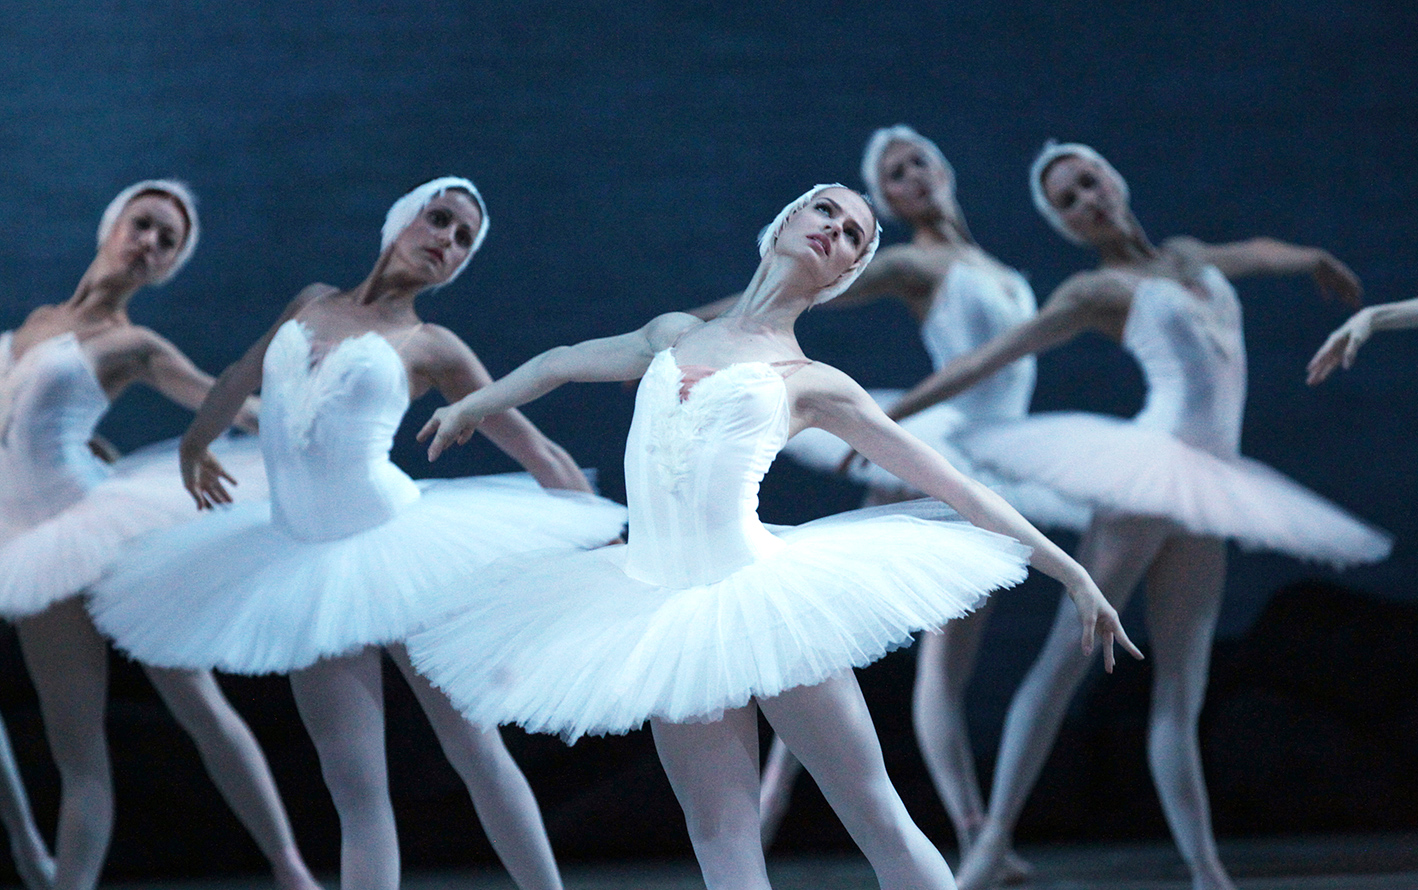 A rehearsal of the Swan Lake ballet's 3D broadcast at the Mariinsky Theater in St. Petersburg.